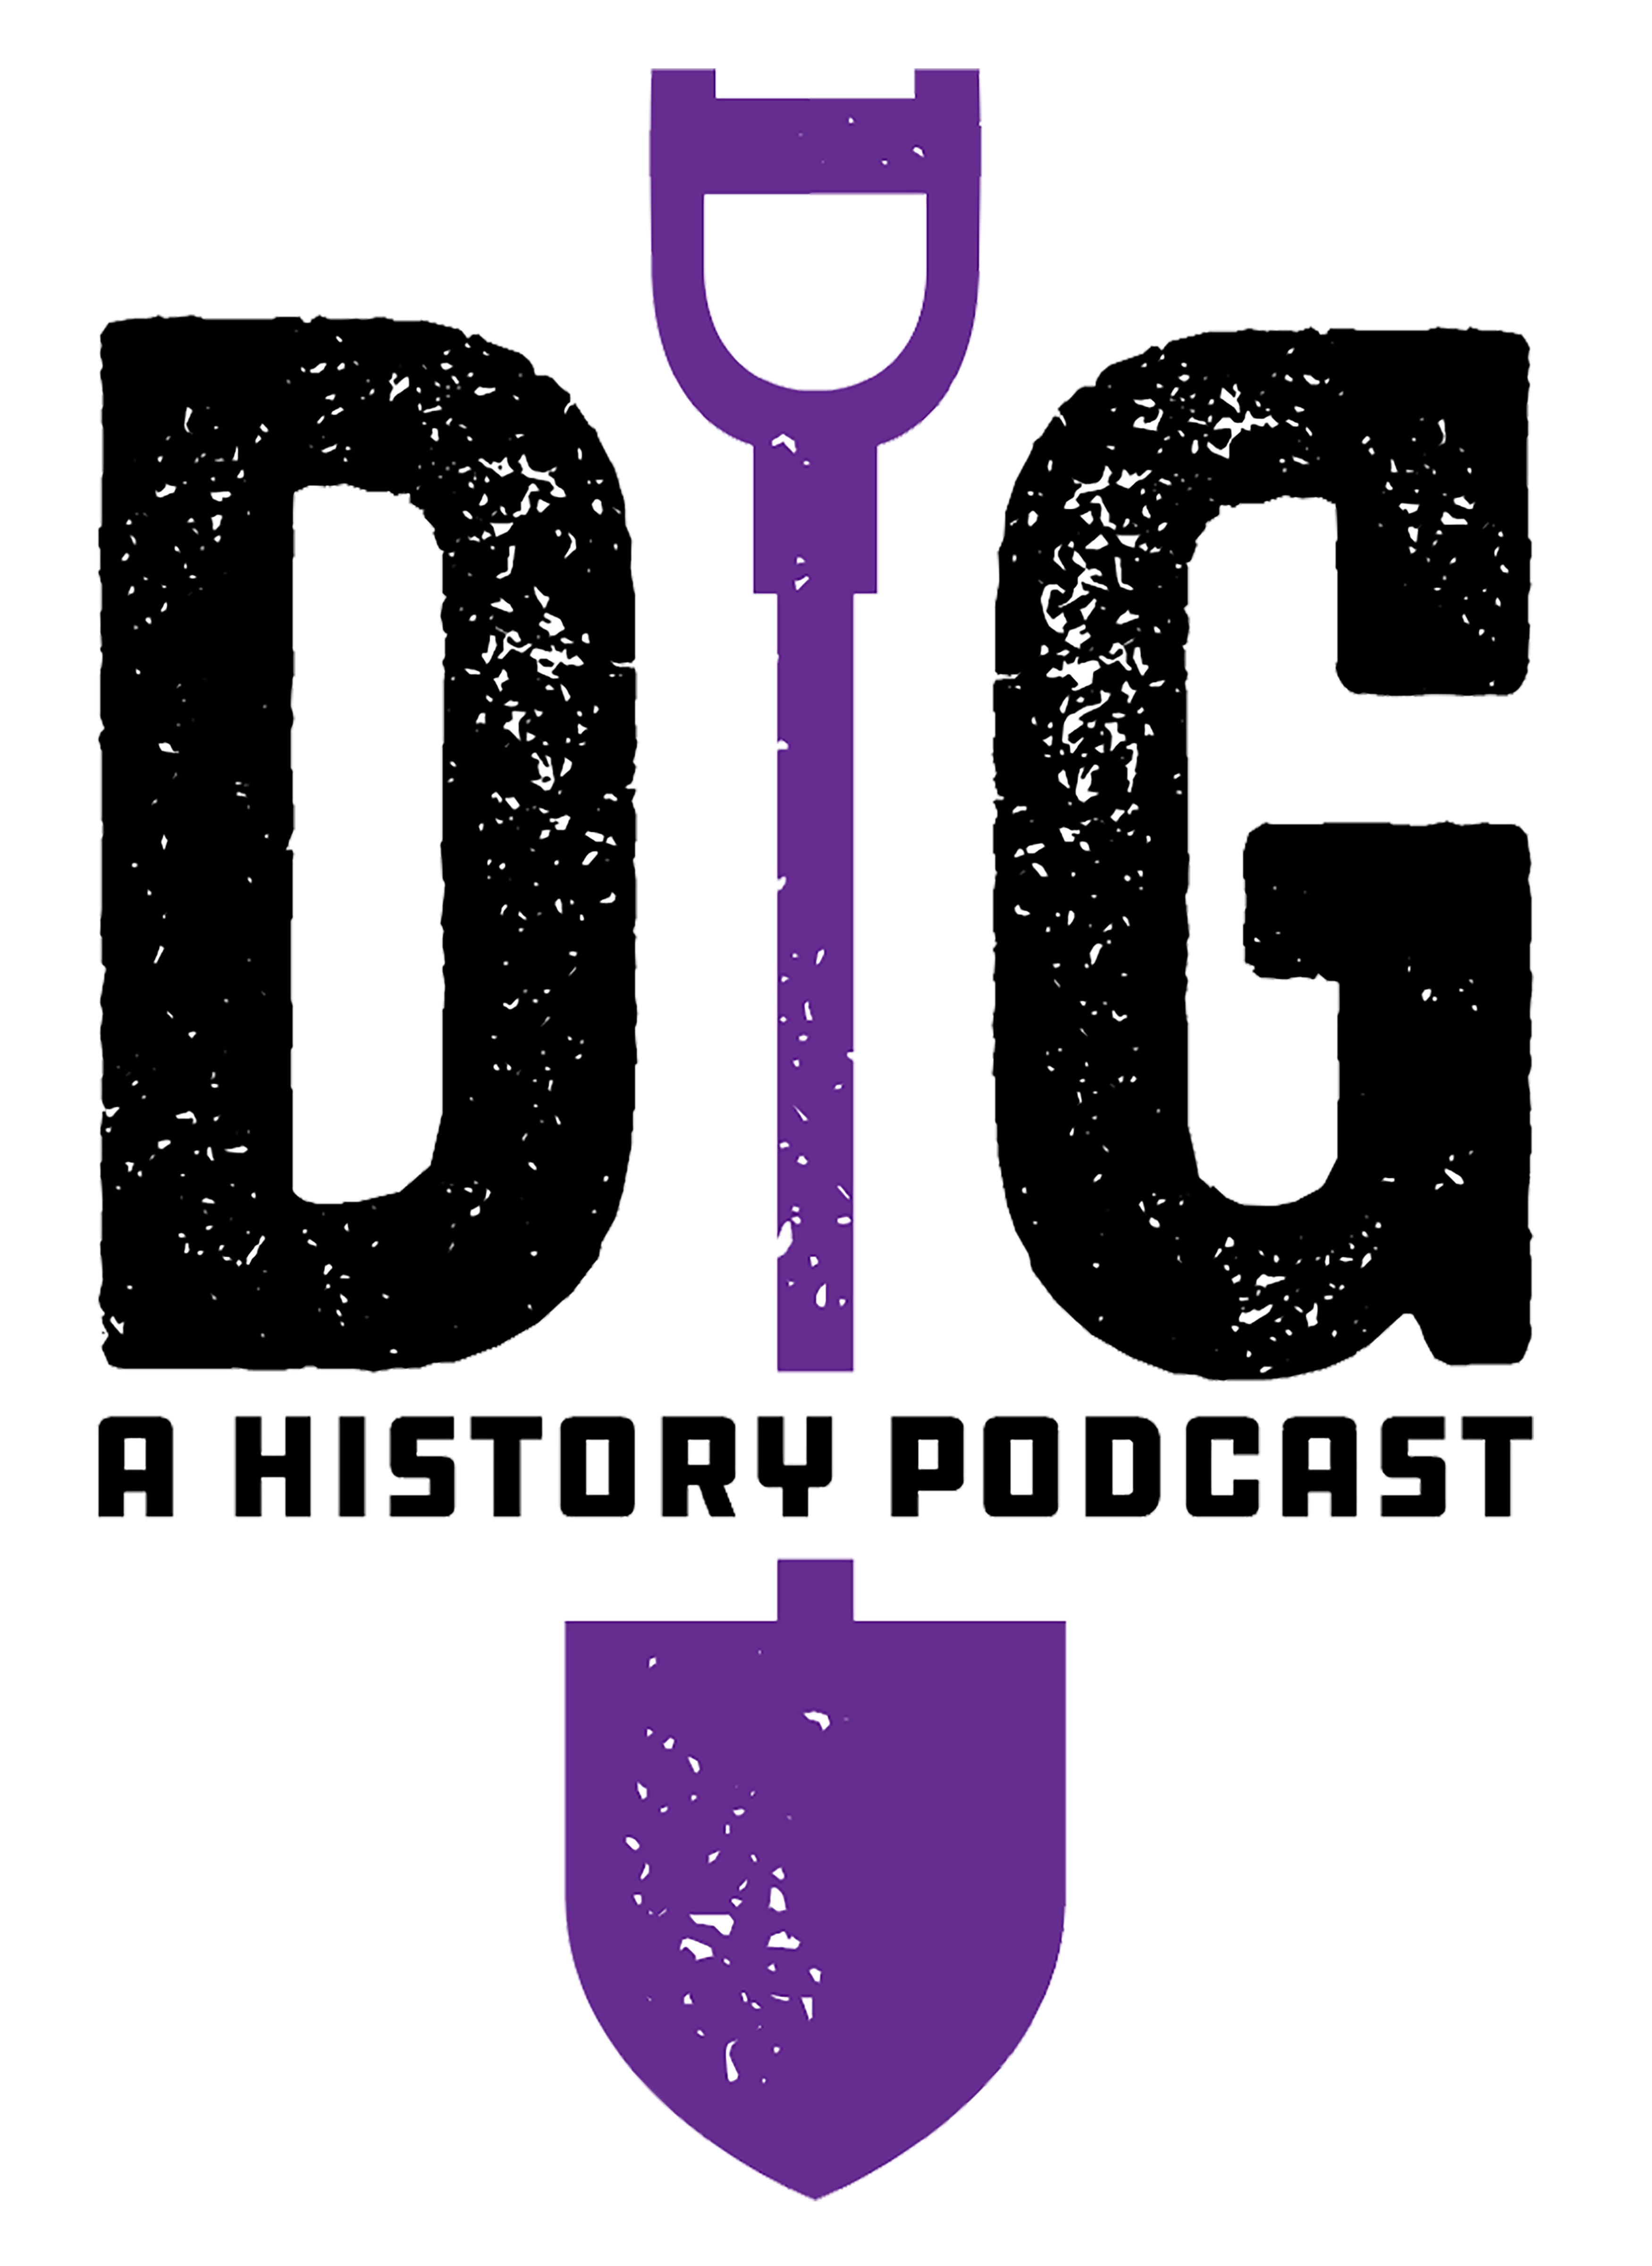 DIG A History Podcast logo with a purple shovel as the letter